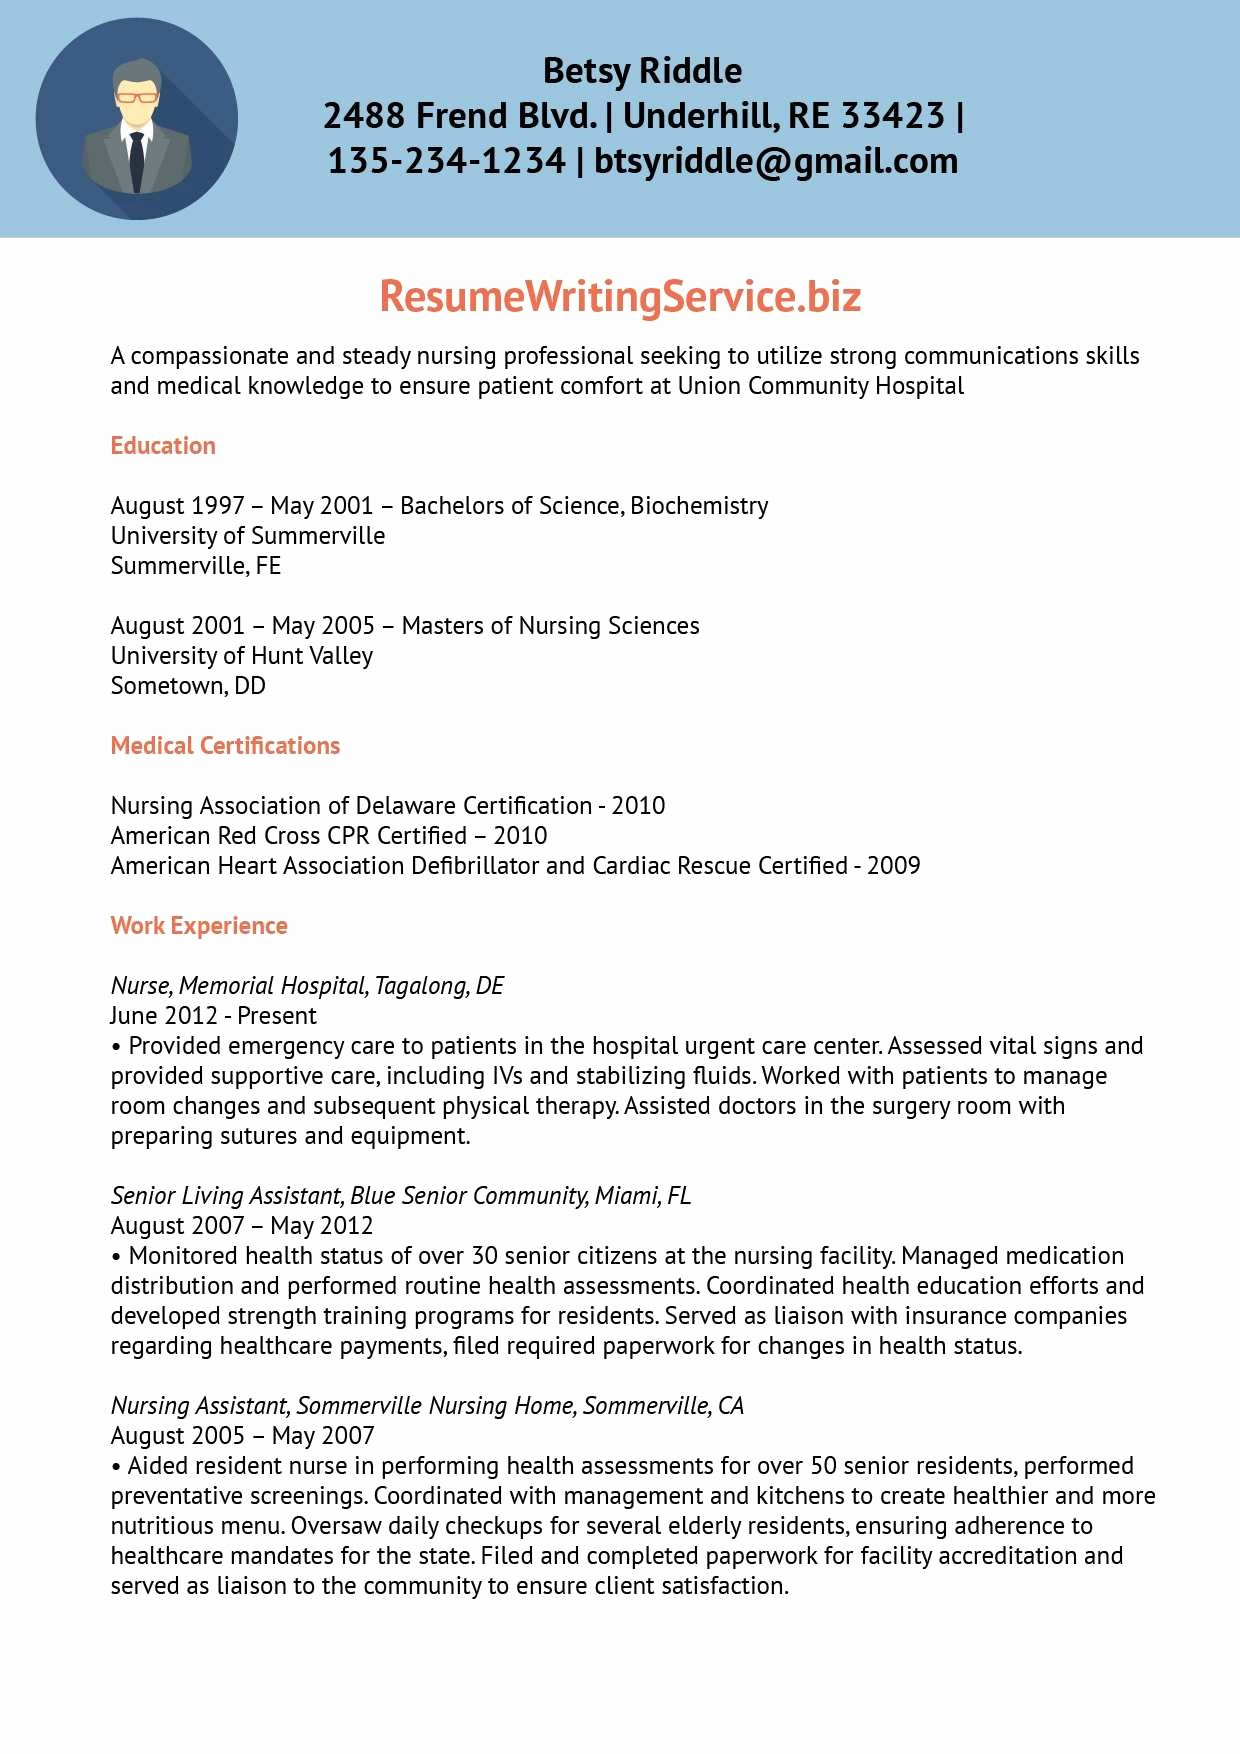 Resume Writing Service Melbourne Resume Ideas Professional